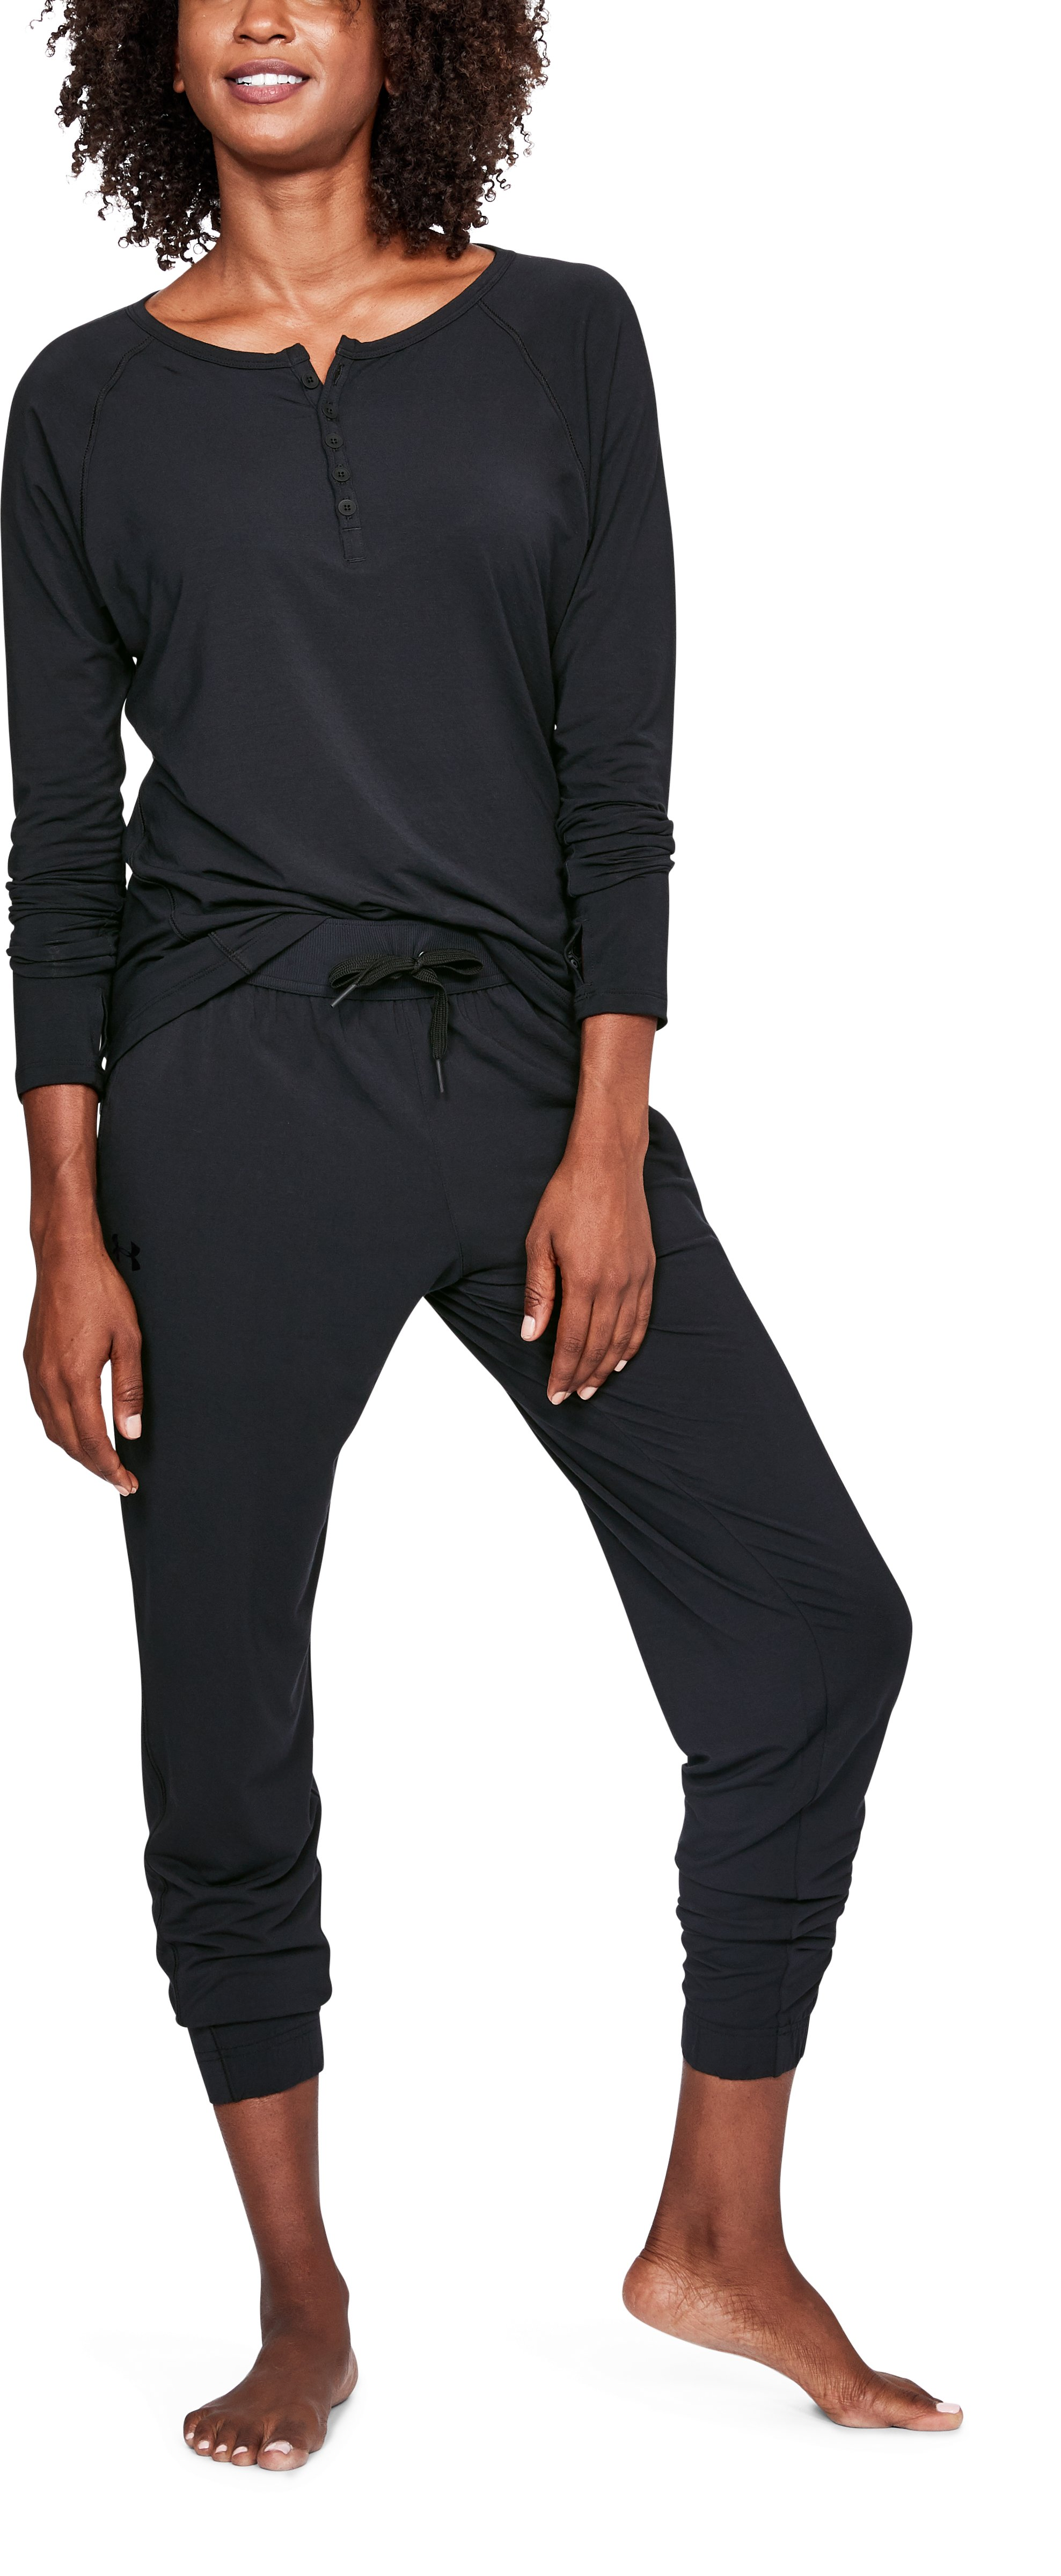 Women's Athlete Recovery Ultra Comfort Sleepwear Pants, Black , undefined